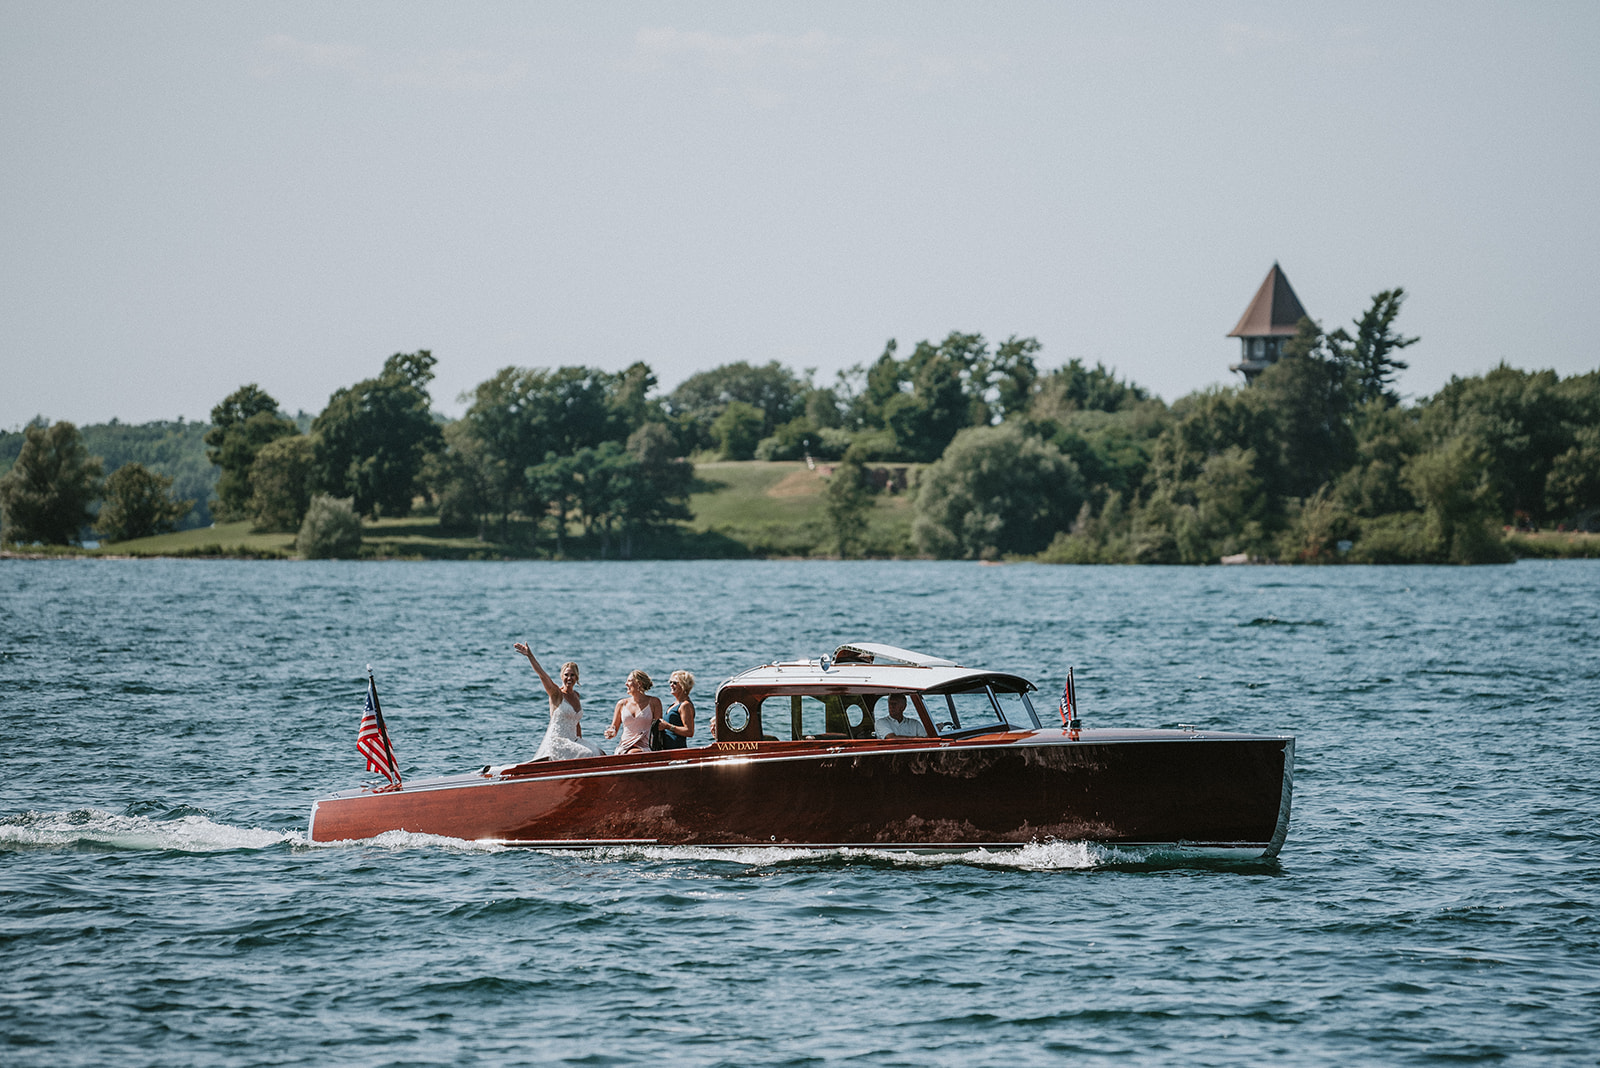 The river wedding - Nautical airiness meets elegant sophistication in this St. Lawrence River summer wedding. August 2nd, 2019